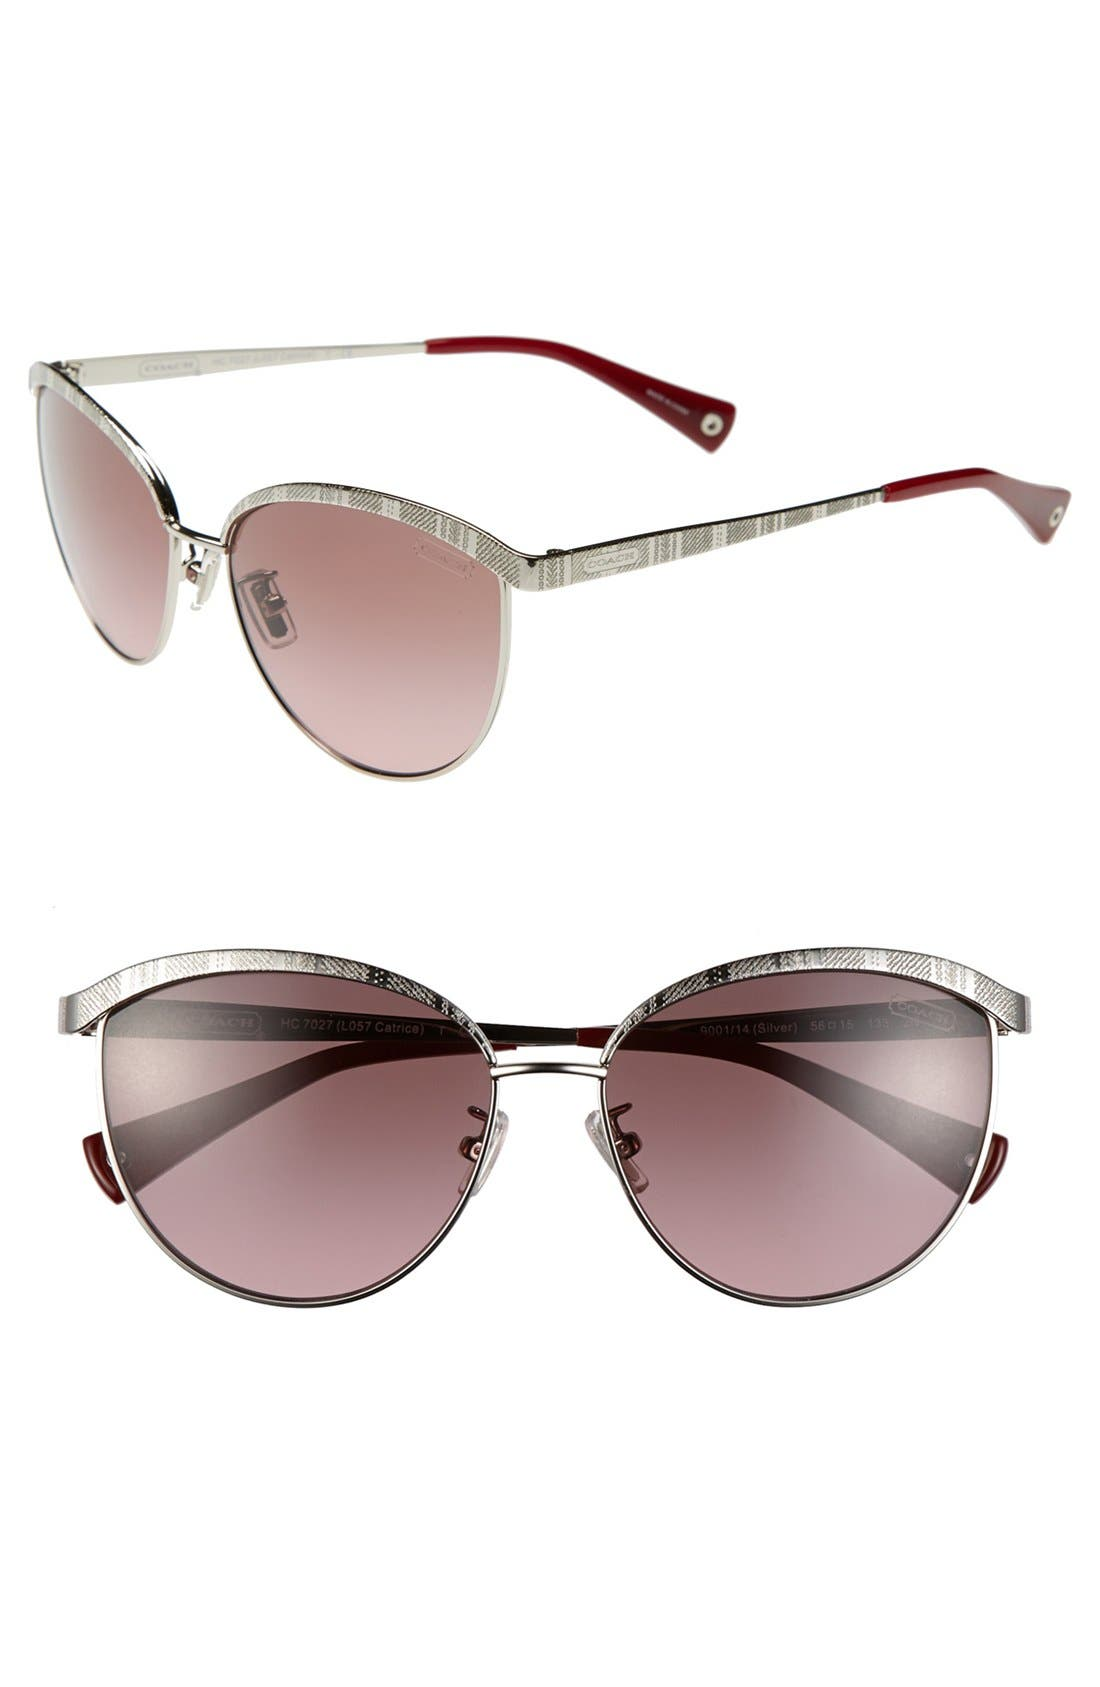 Main Image - COACH 'Pilot' 56mm Sunglasses